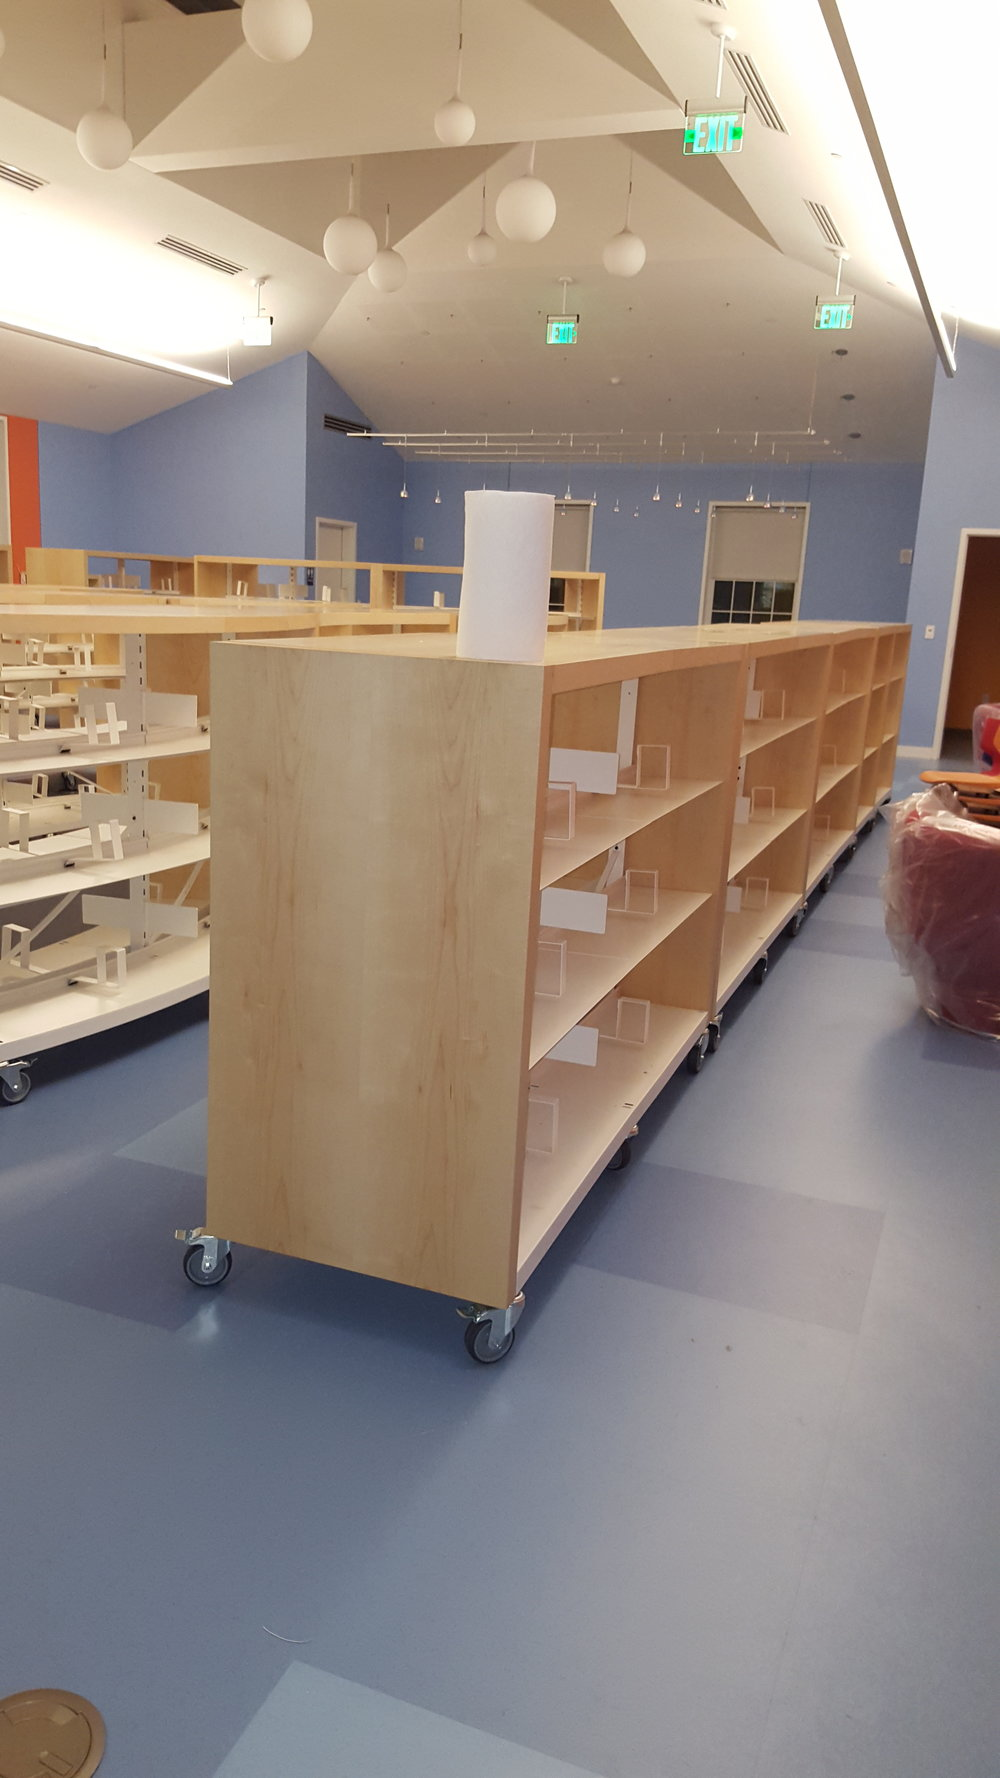 Children's Room Straight Shelving on Wheels.jpg